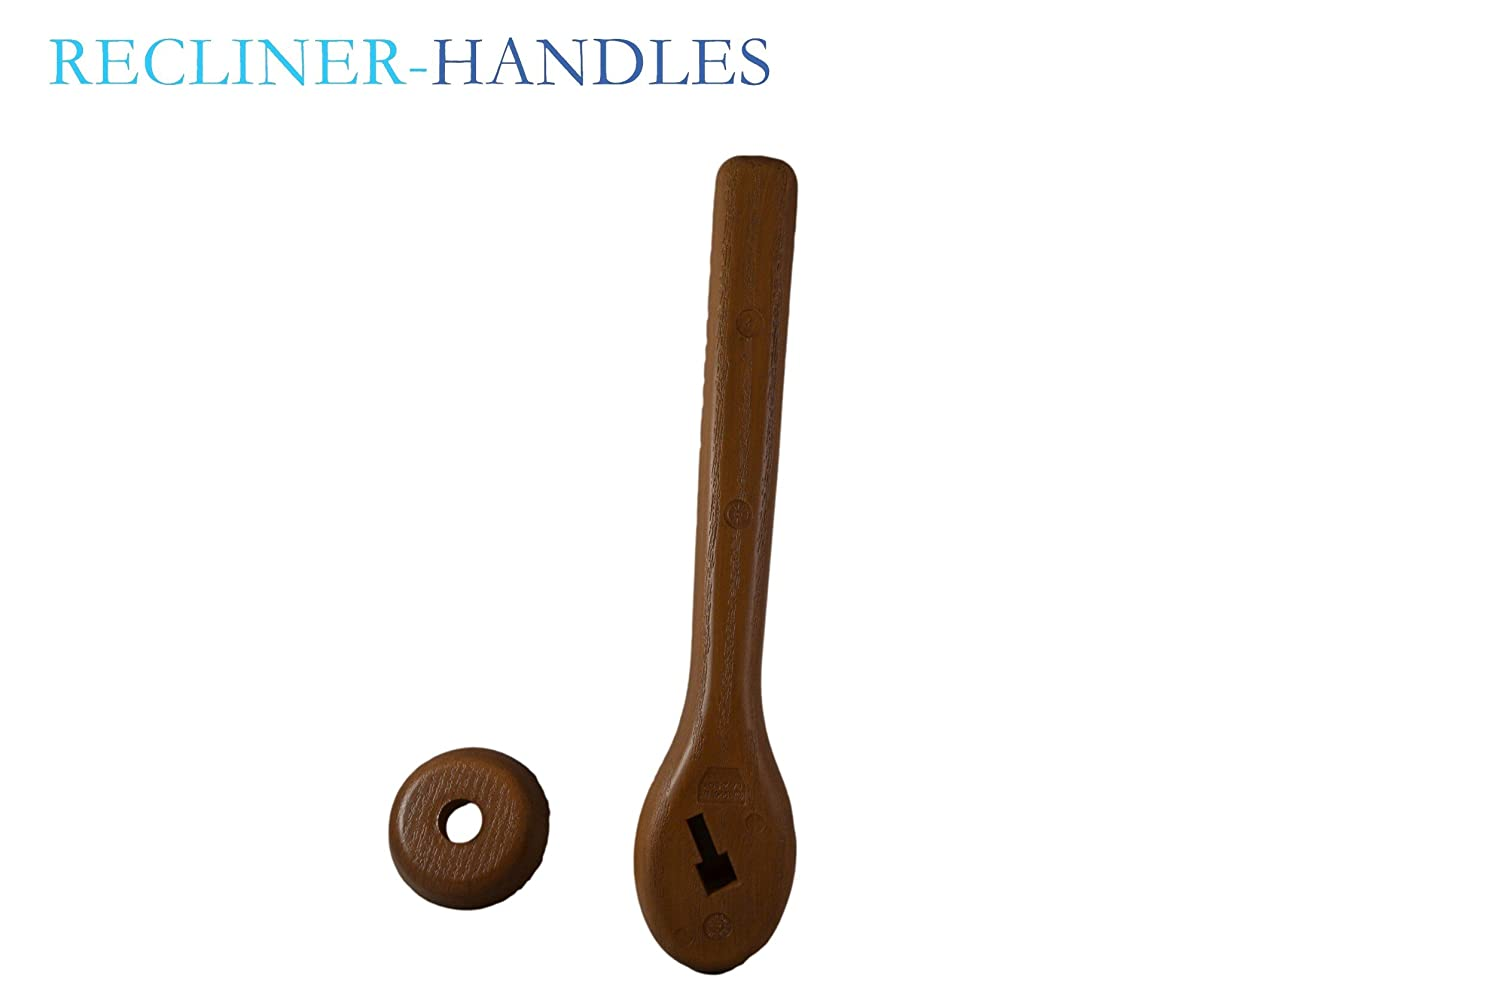 Amazon.com Lazy Boy La-Z-Boy Recliner Handle lever Style Right Hand New Style Hole Kitchen u0026 Dining  sc 1 st  Amazon.com & Amazon.com: Lazy Boy La-Z-Boy Recliner Handle lever Style Right ... islam-shia.org